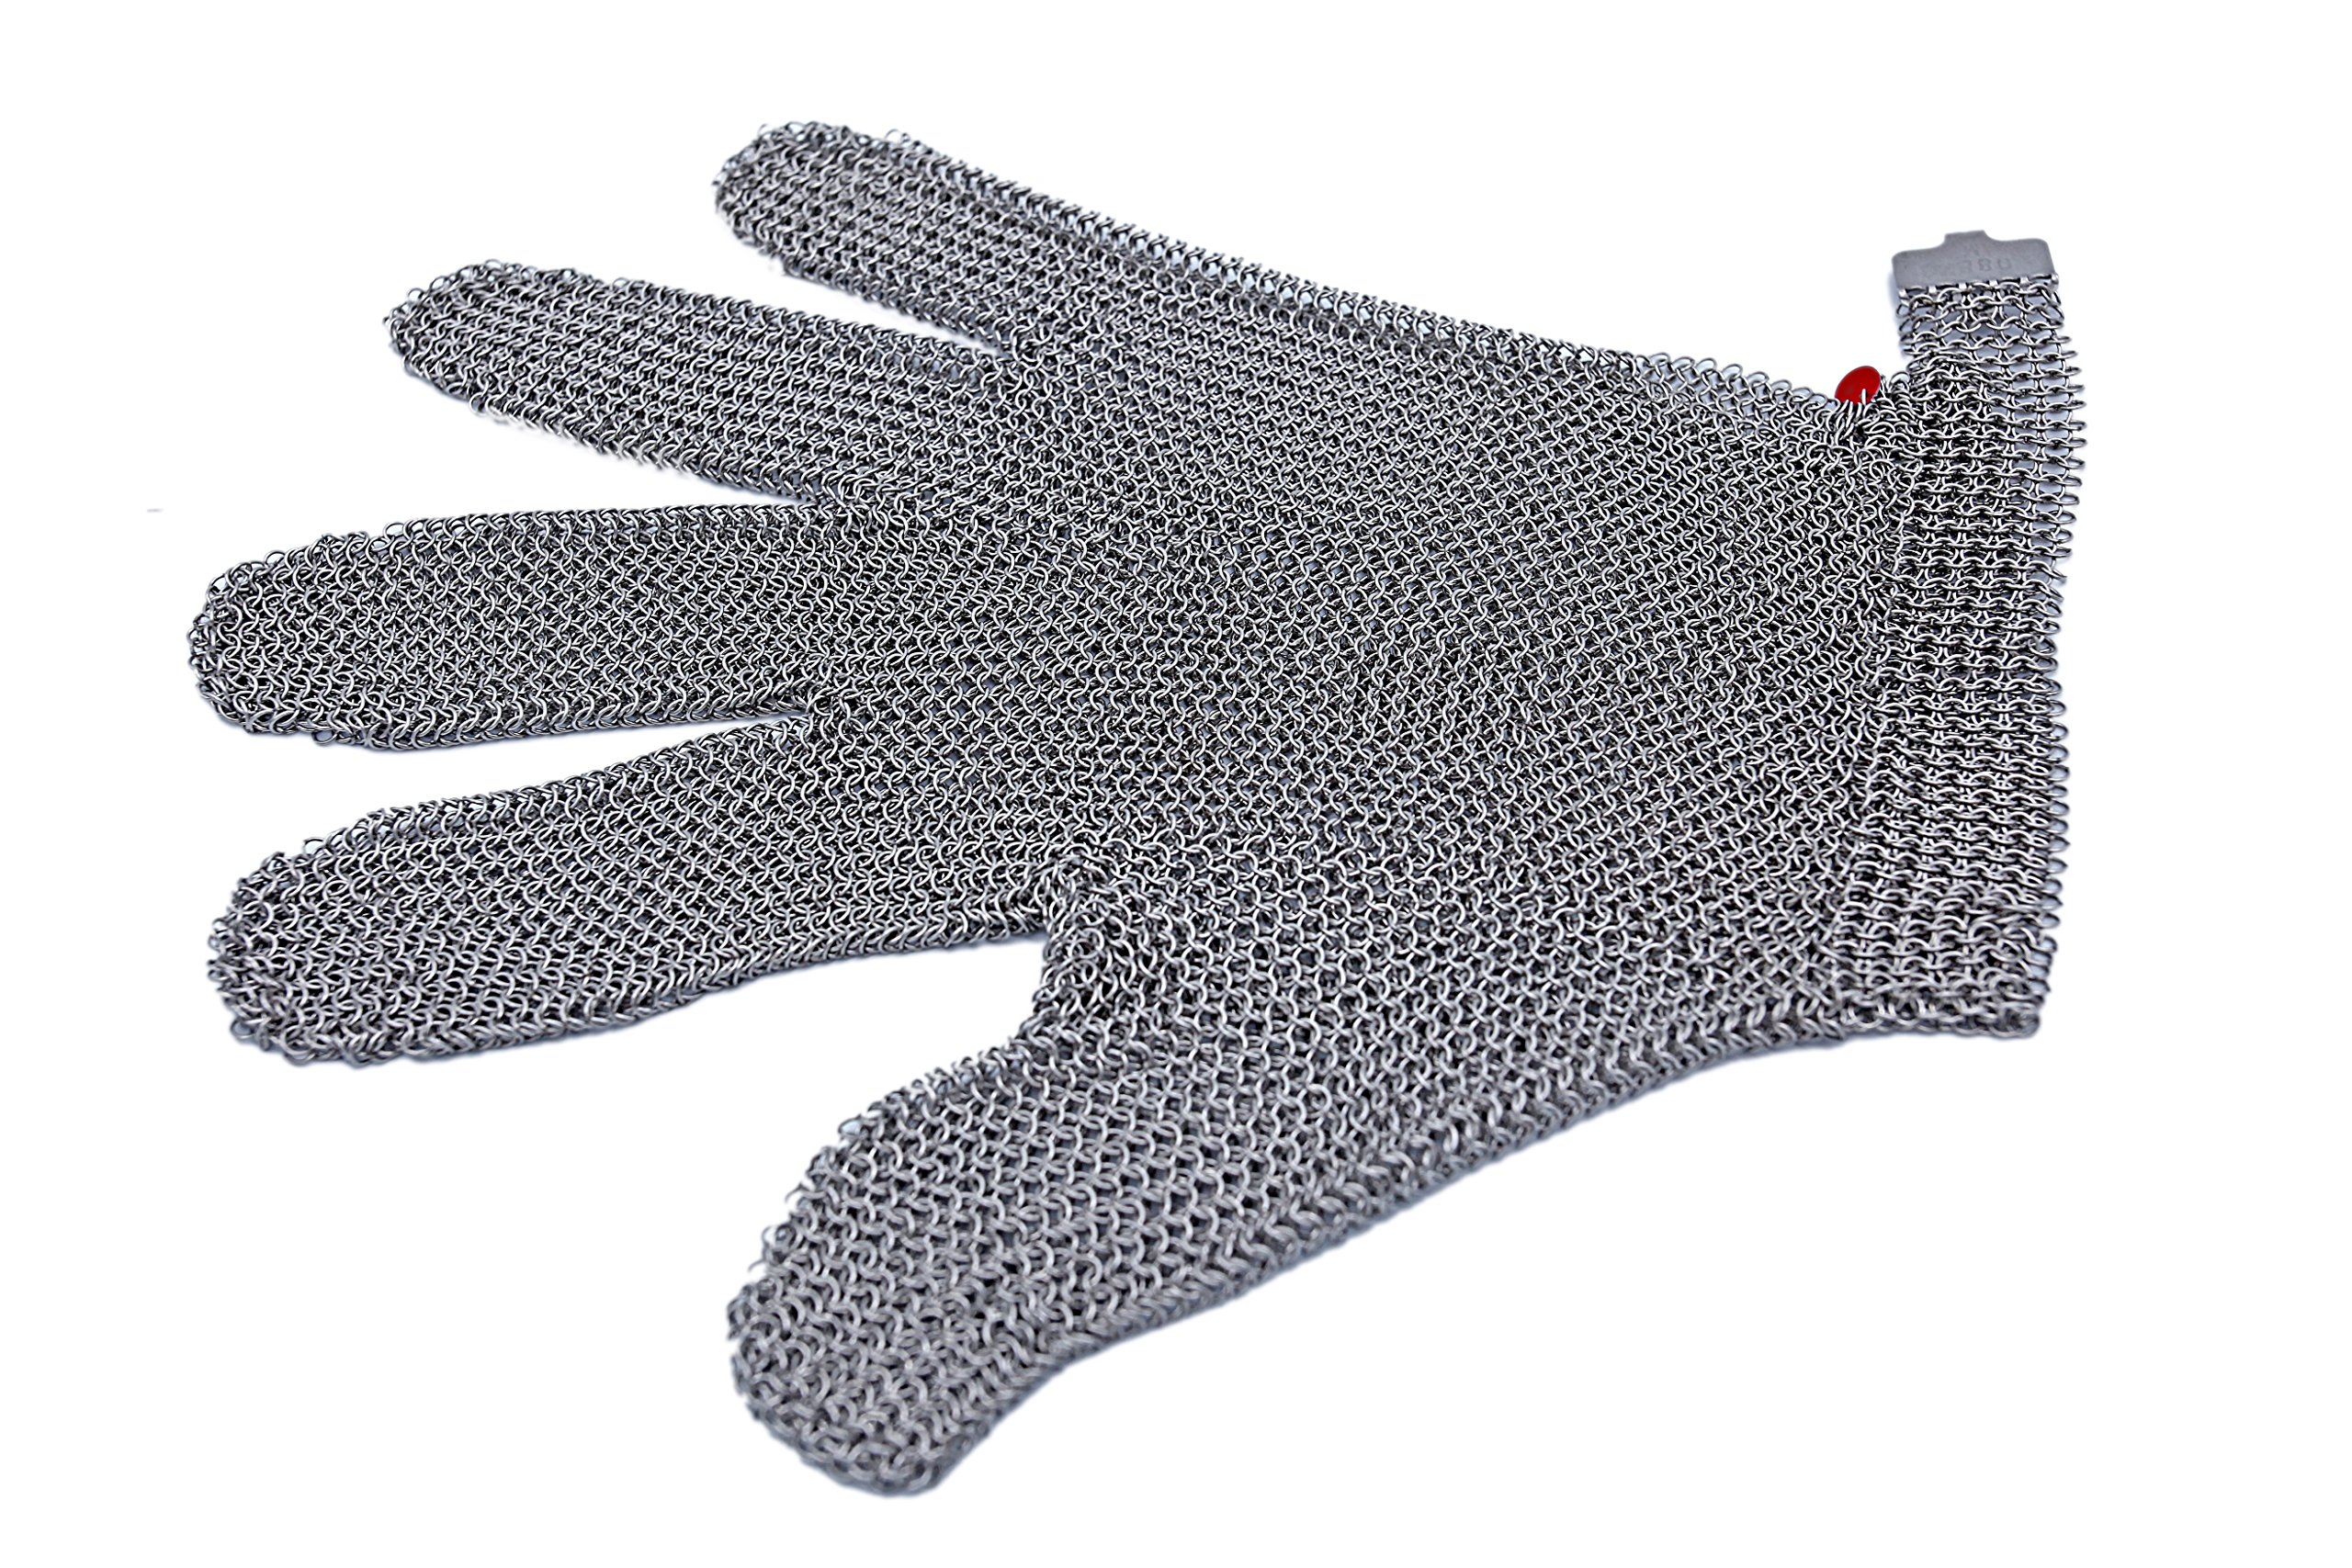 All Stainless Steel, No Fabric - Chainmail Mesh Butcher Glove - Sizes XXS to XL Available - ISO, FDA Compliant by 44Industry (Image #5)